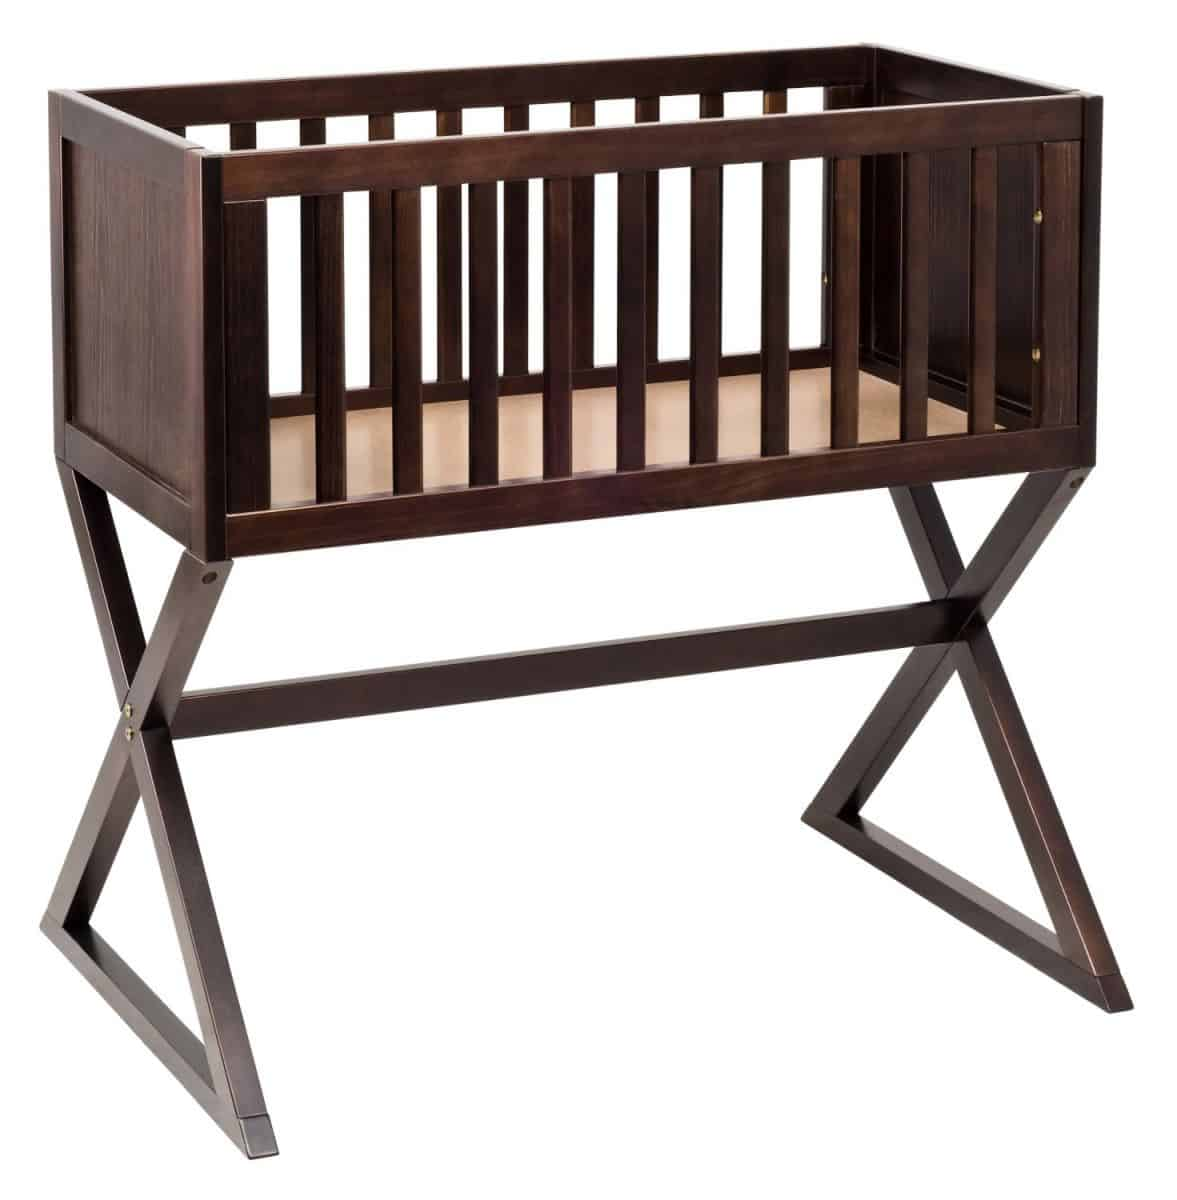 hello wonderful   modern baby bassinets -  bassinet design  this one is meant to be right by parents' bedside forconvenient access and turns into a modern play table once baby outgrows it